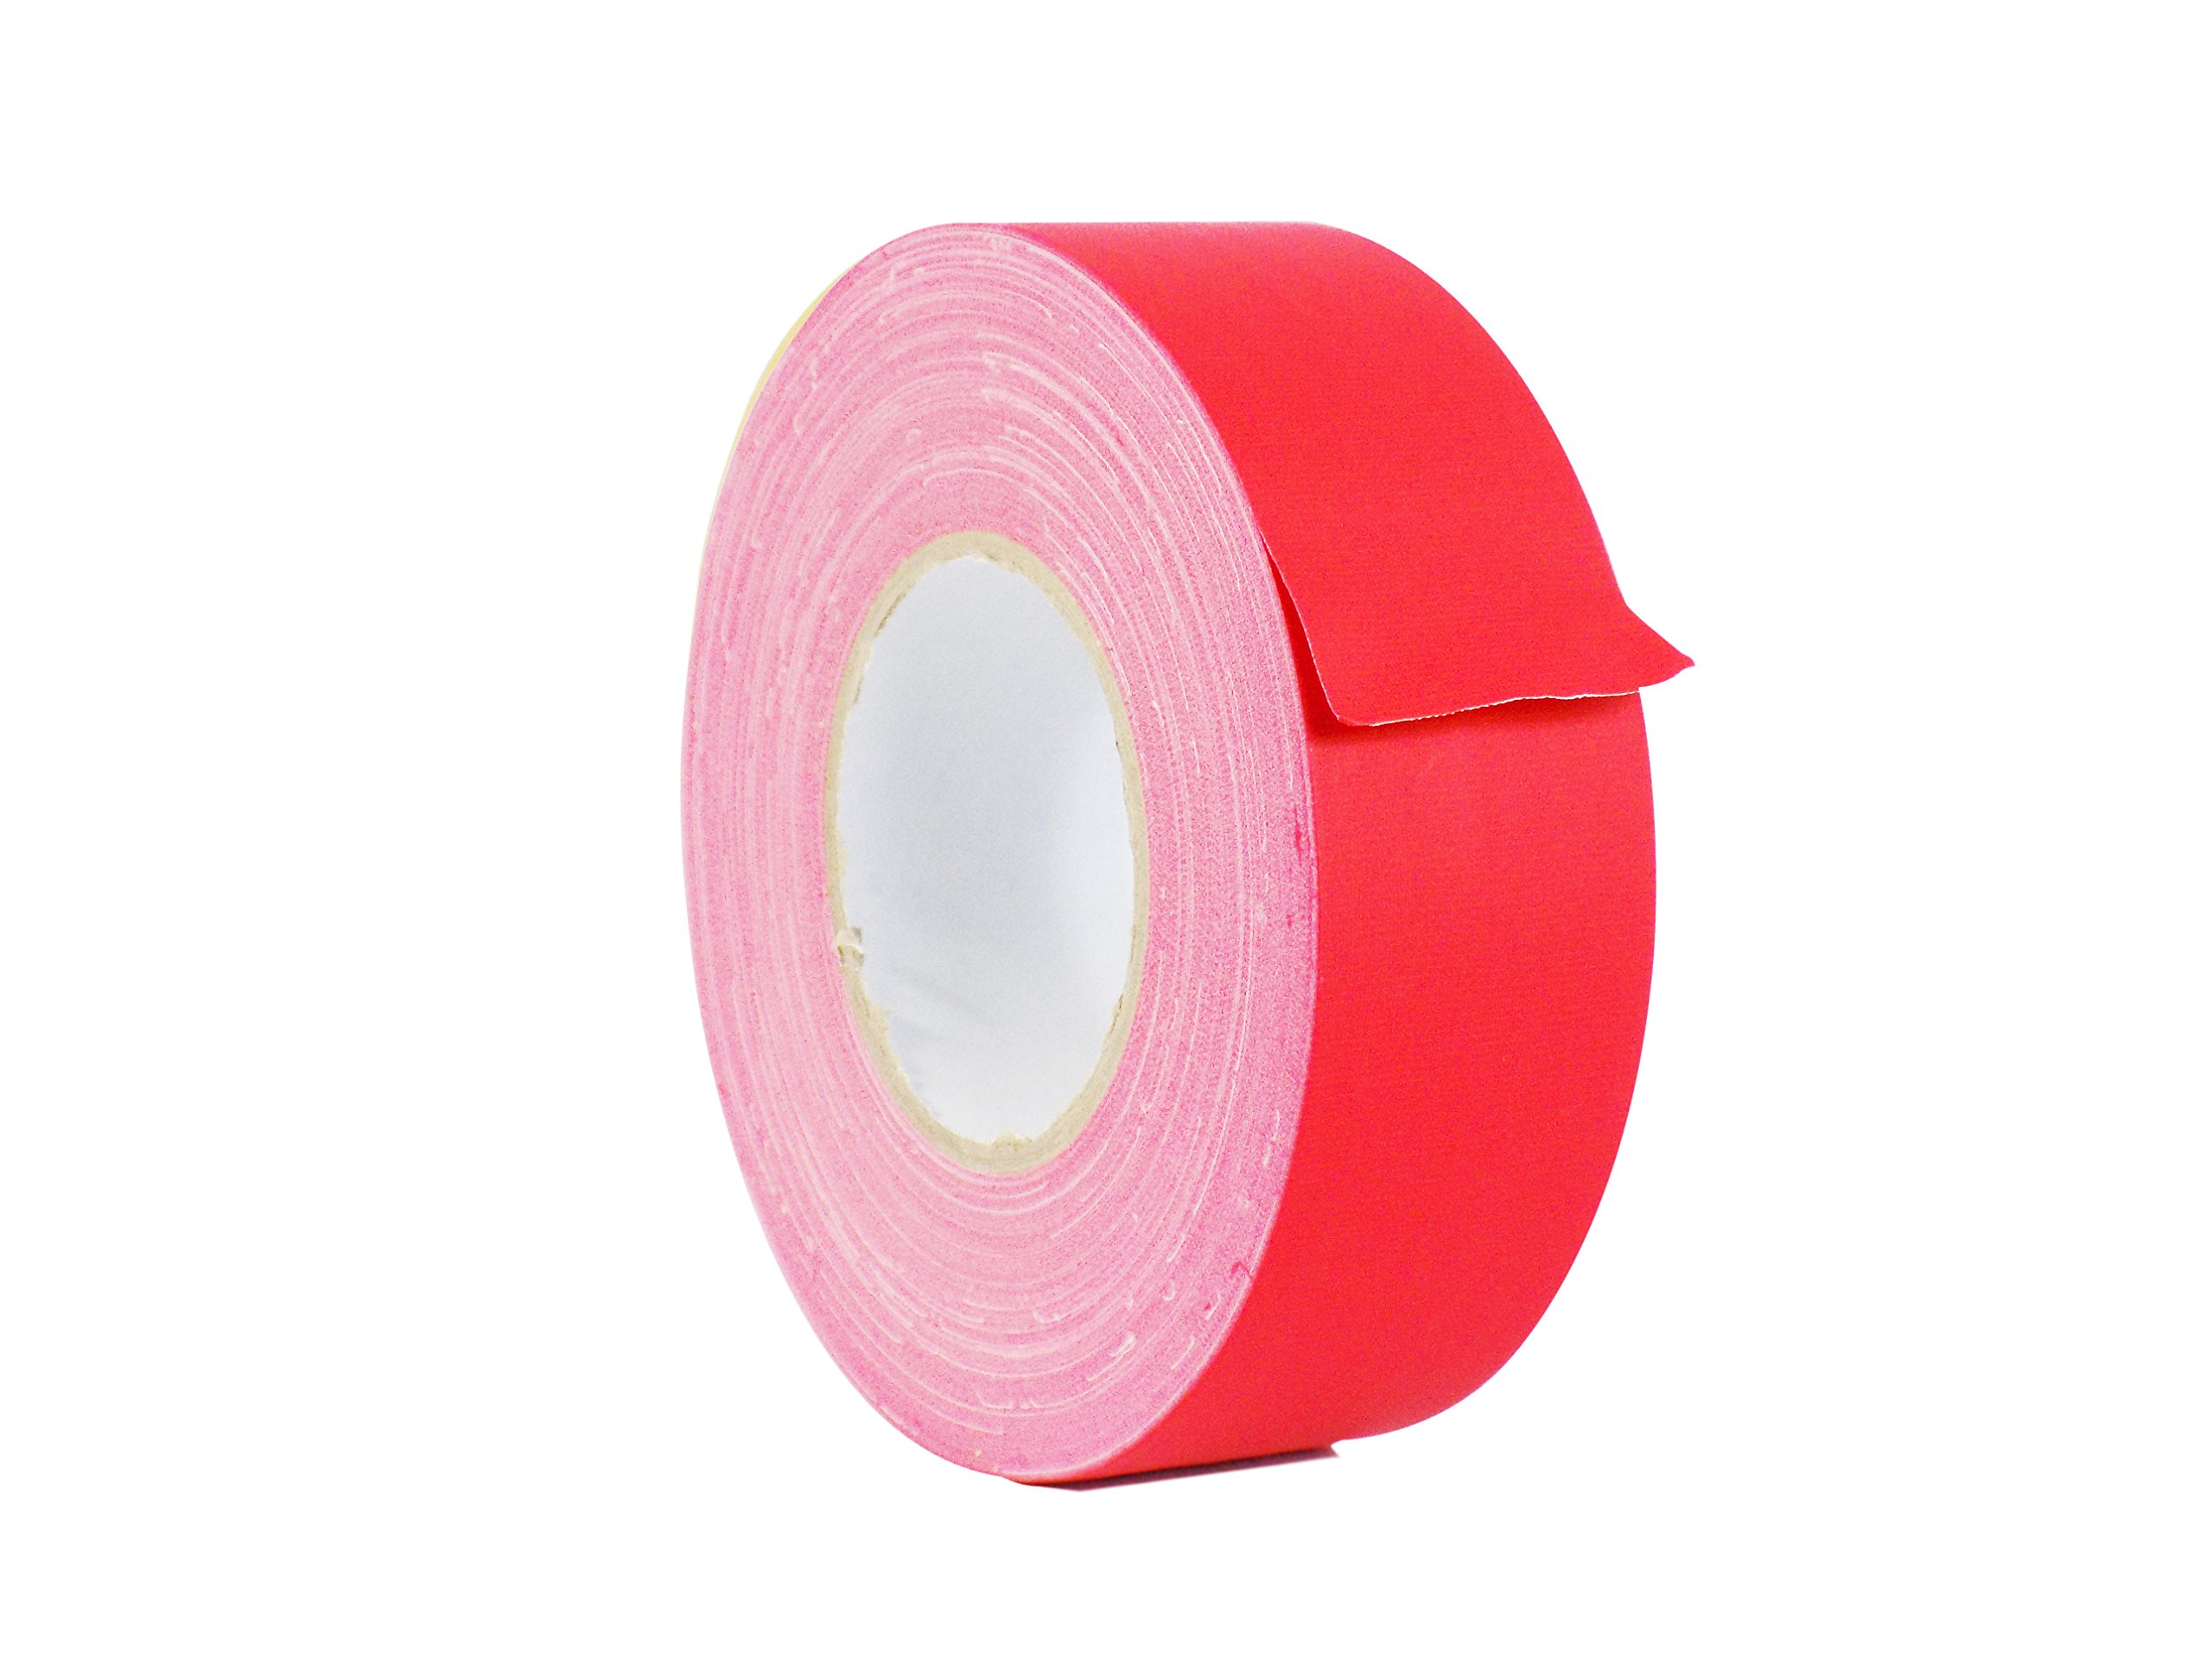 WOD CGT-80 Red Gaffer Tape Low Gloss Finish Film, Residue Free, Non Reflective Gaffer, Better than Duct Tape (Available in Multiple Sizes & Colors): 2.5 in. X 60 Yards (Pack of 1)